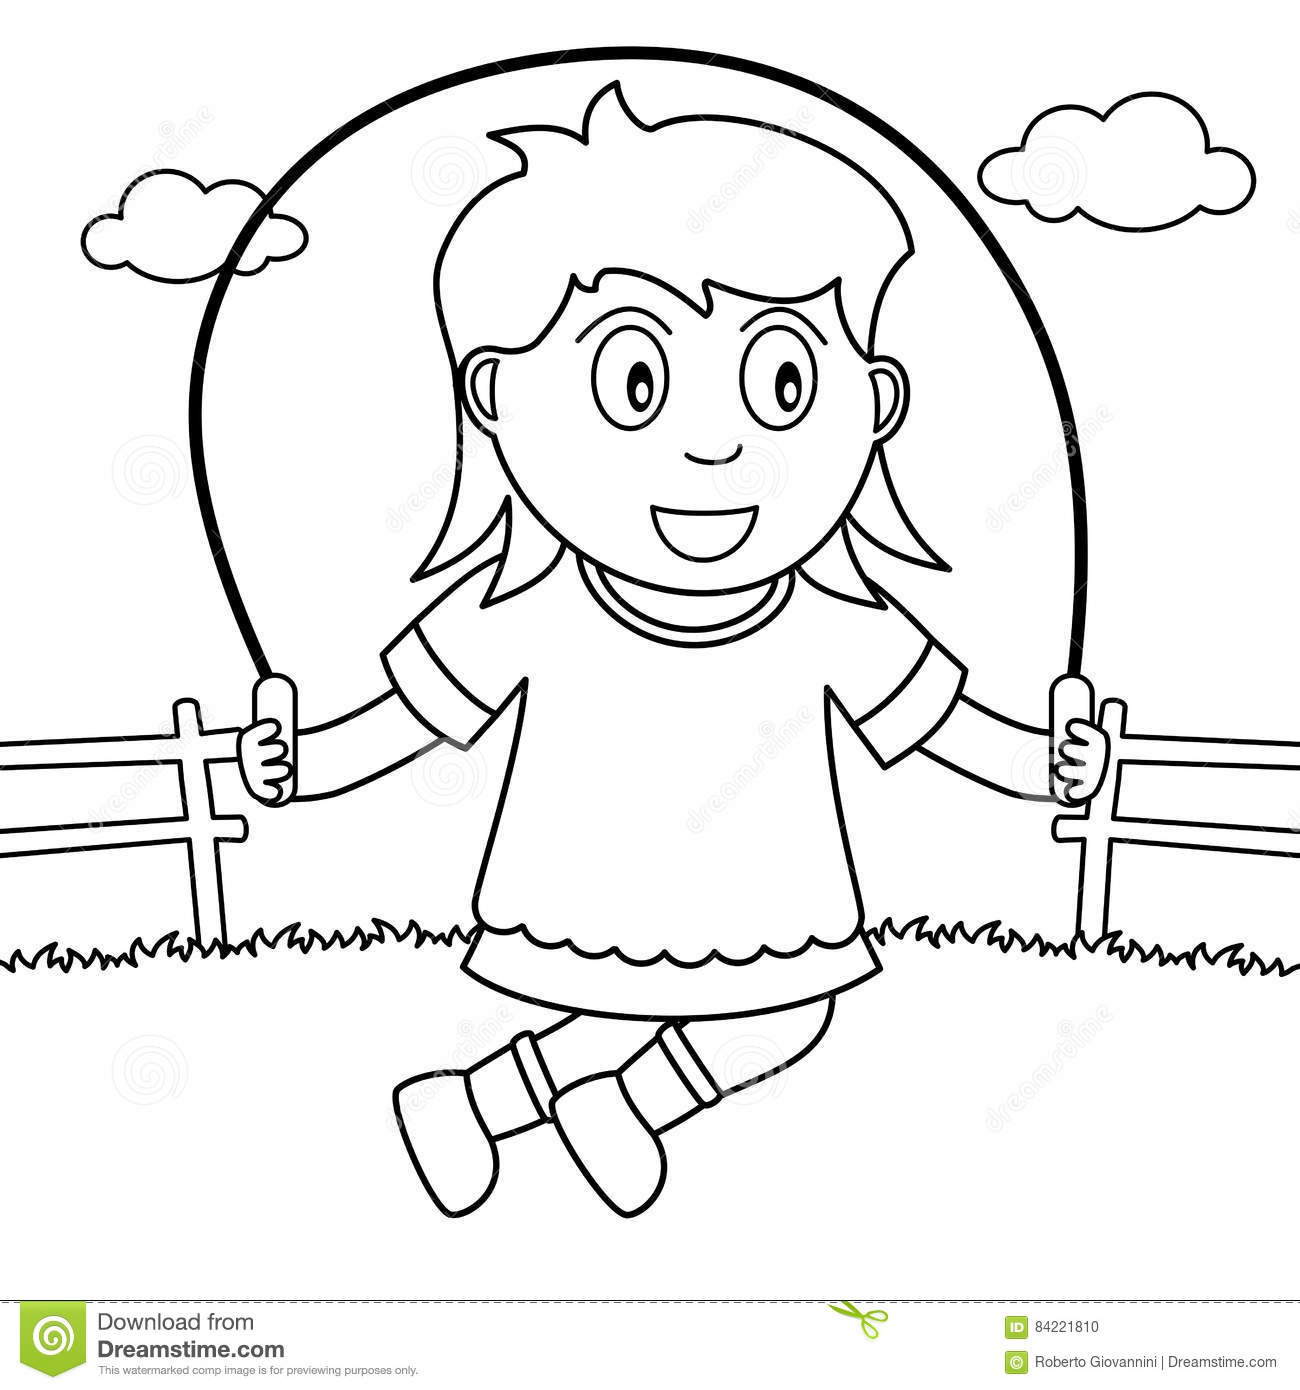 rope coloring pages - coloring girl skipping with rope in the park stock vector